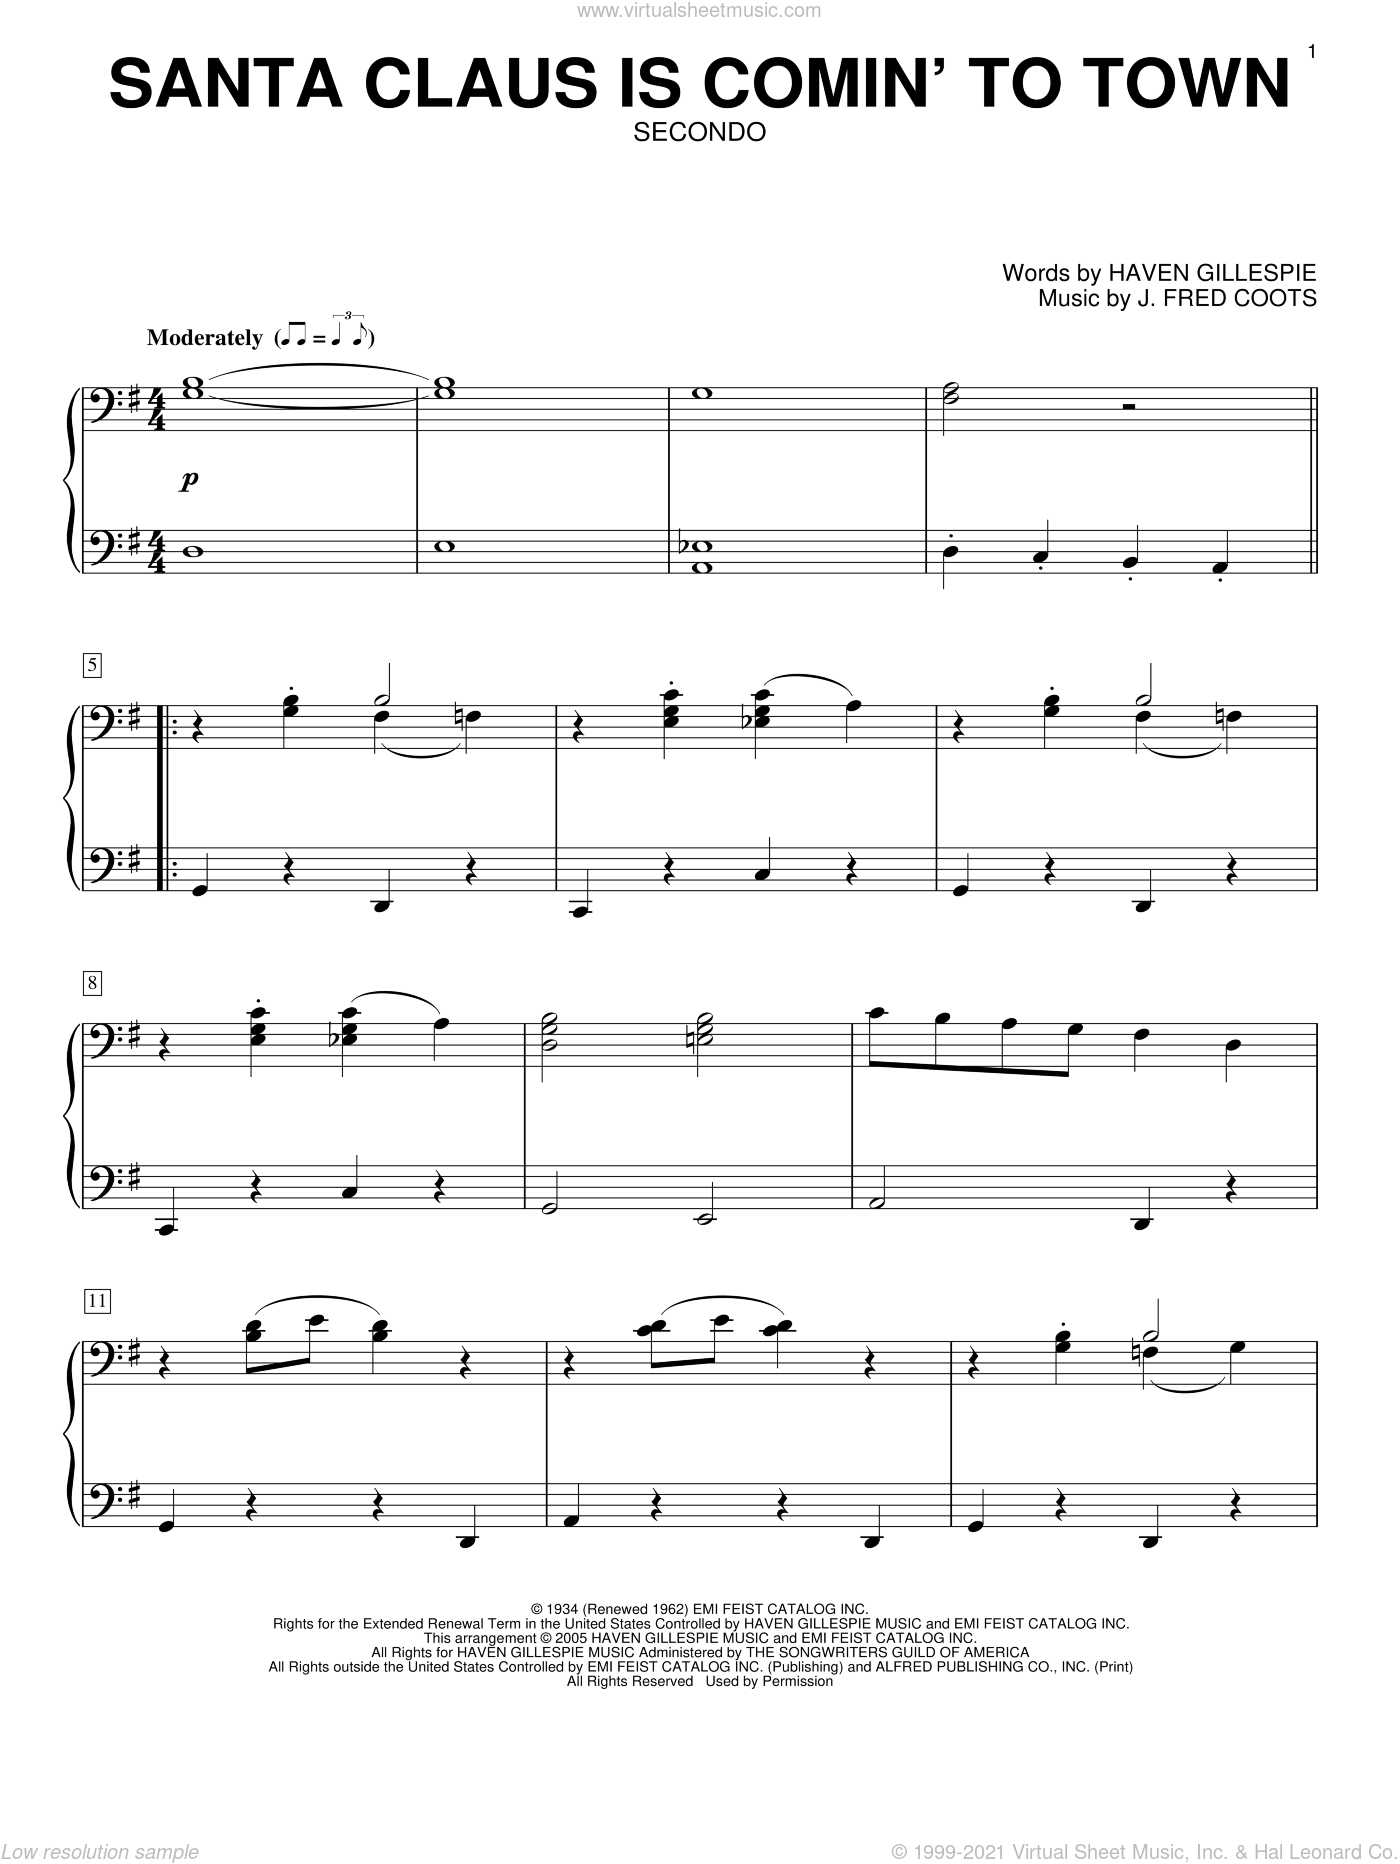 Santa Claus Is Comin' To Town sheet music for piano four hands by J. Fred Coots and Haven Gillespie, intermediate skill level